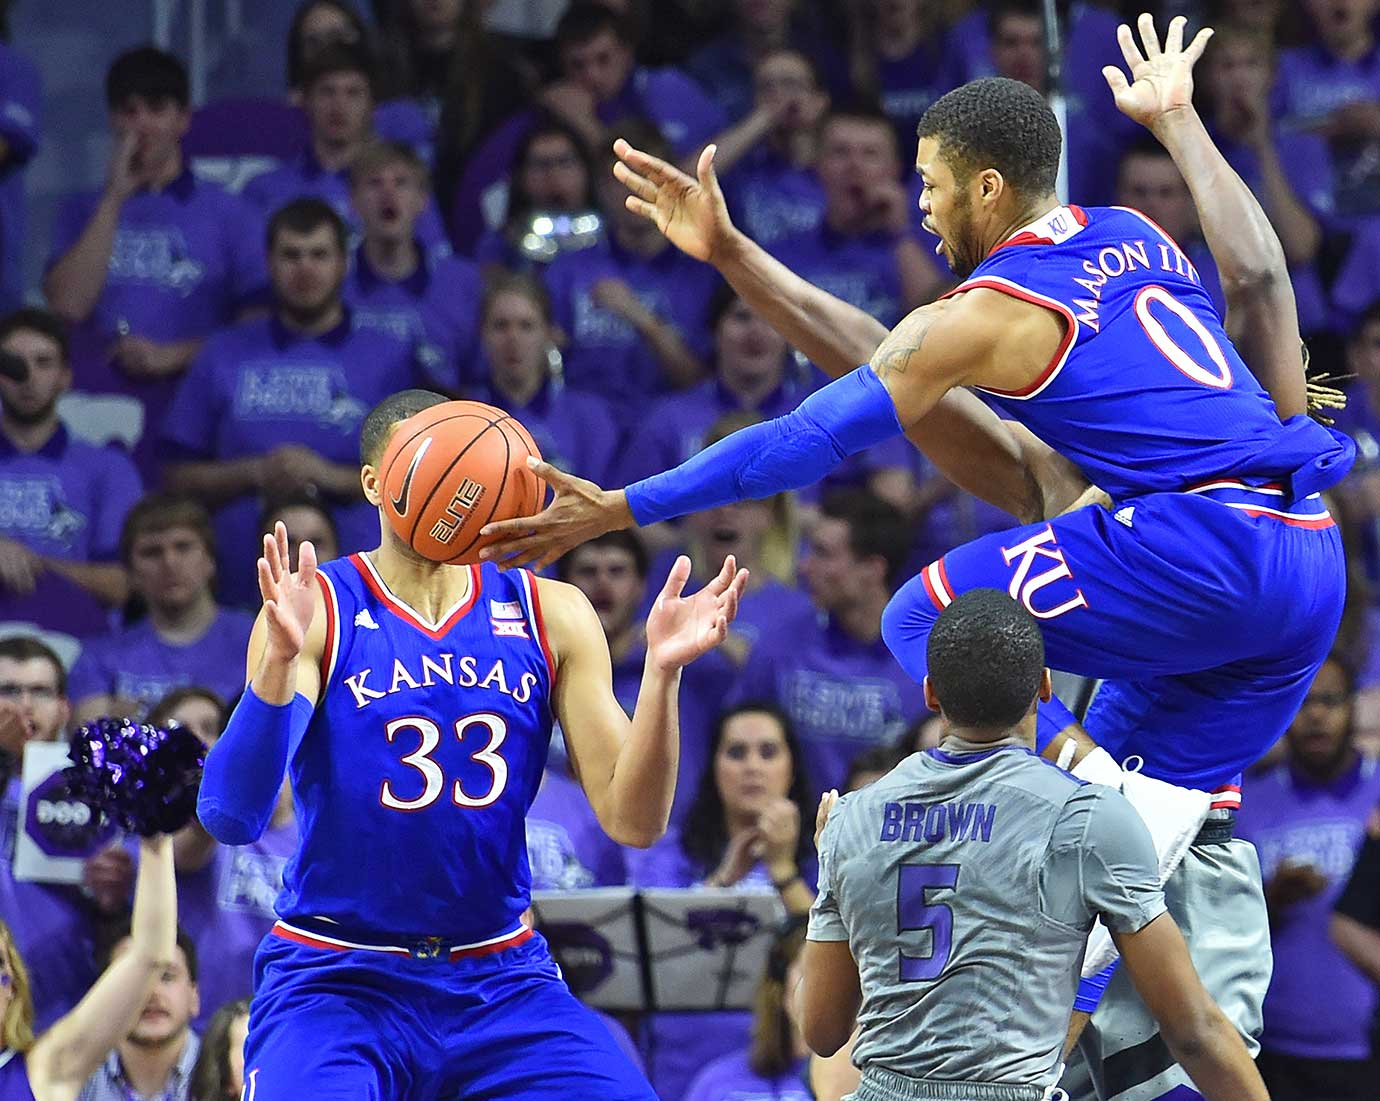 Frank Mason III passes the ball to Landen Lucas.